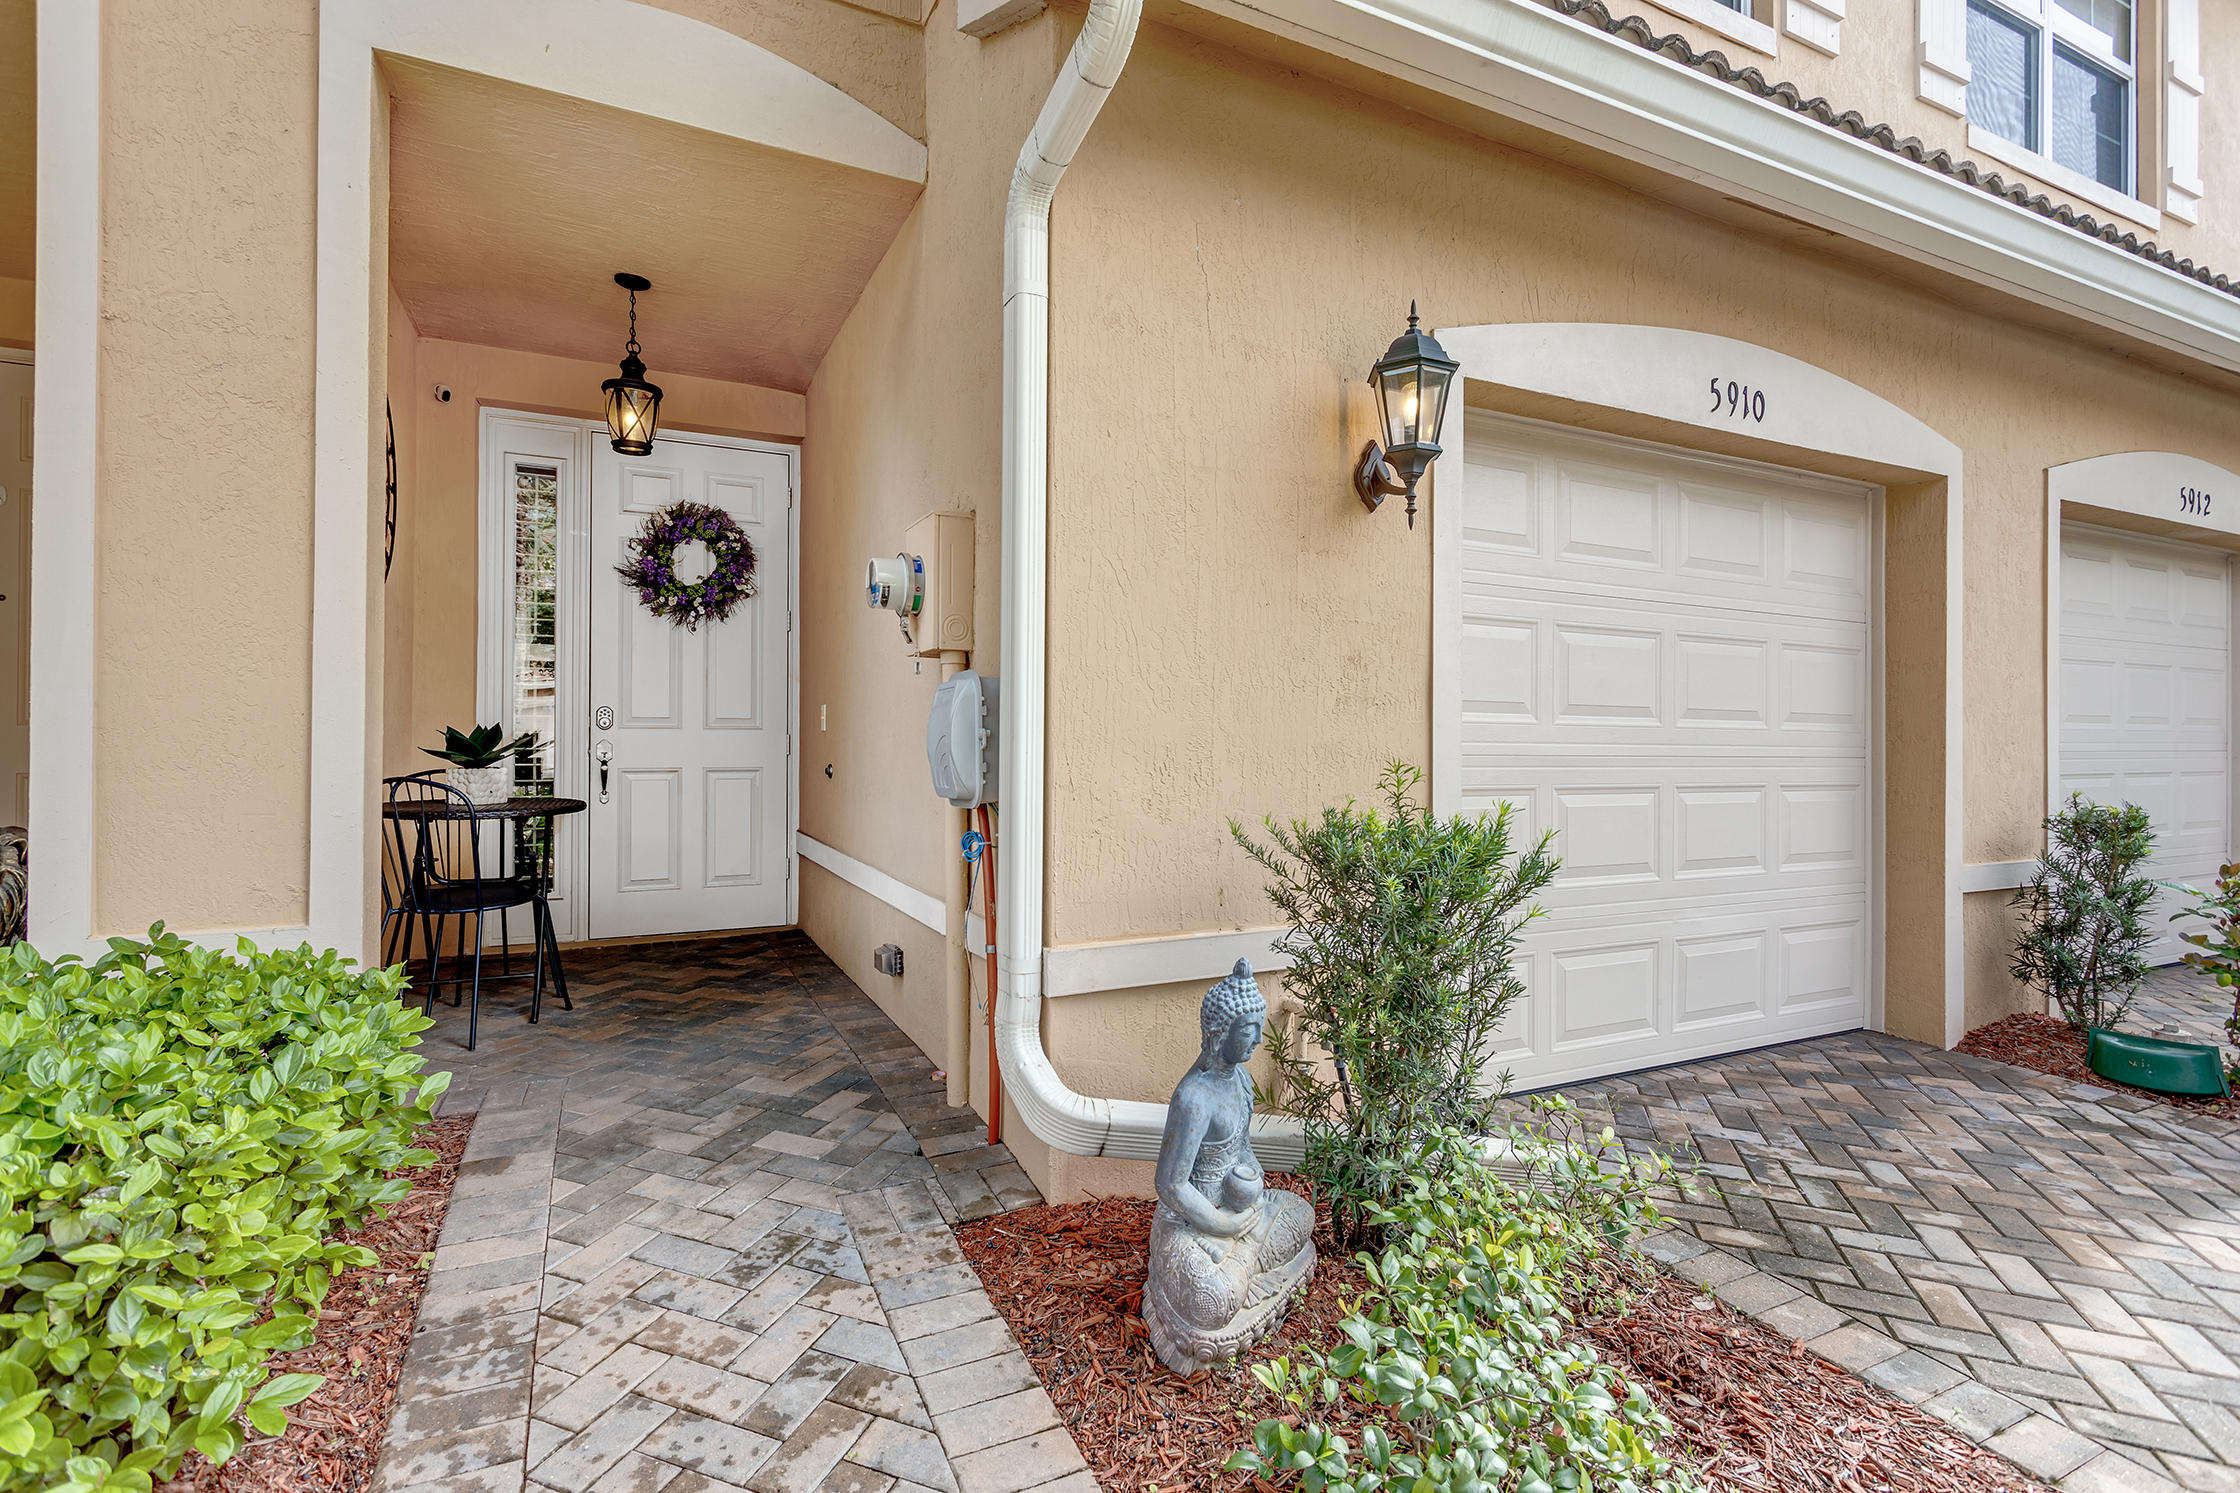 ASOLUTELY STUNNING AND BETTER THAN NEW! You will be wowed when you walk in to this 3 Bed 2.1 Bath townhome. This 2016 built home has serious high-end upgrades & customized options to make it look like a model home including New high-end flooring, Plantation Shutters on every window on both levels, granite counters & backsplash, high-end white 42'' inch cabinets, stainless steel appliances, extra recessed lighting, and crown molding throughout the home including bedrooms, ceiling fans in all the rooms. Full washer & dryer on the 2nd level. One of the only homes with brick paved and hurricane rated screen enclosure, perfect for entertaining and weekend BBQ's.This home has been meticulously cared for and truly a MUST SEE! You will not be disappointed!! Community also boasts a lakefront club.. Life-Fitness professionally-equipped gym, card room, great room and warming kitchen to host those special private events, lakefront heated swimming pool and spa for that resort feel, tot-lot, basketball court, lakefront walking paths with gazebos, benches, lush landscaping and tranquil lake with beautiful sunset views. This amenity-rich community also features a floating dock on the lake with paddle boats!